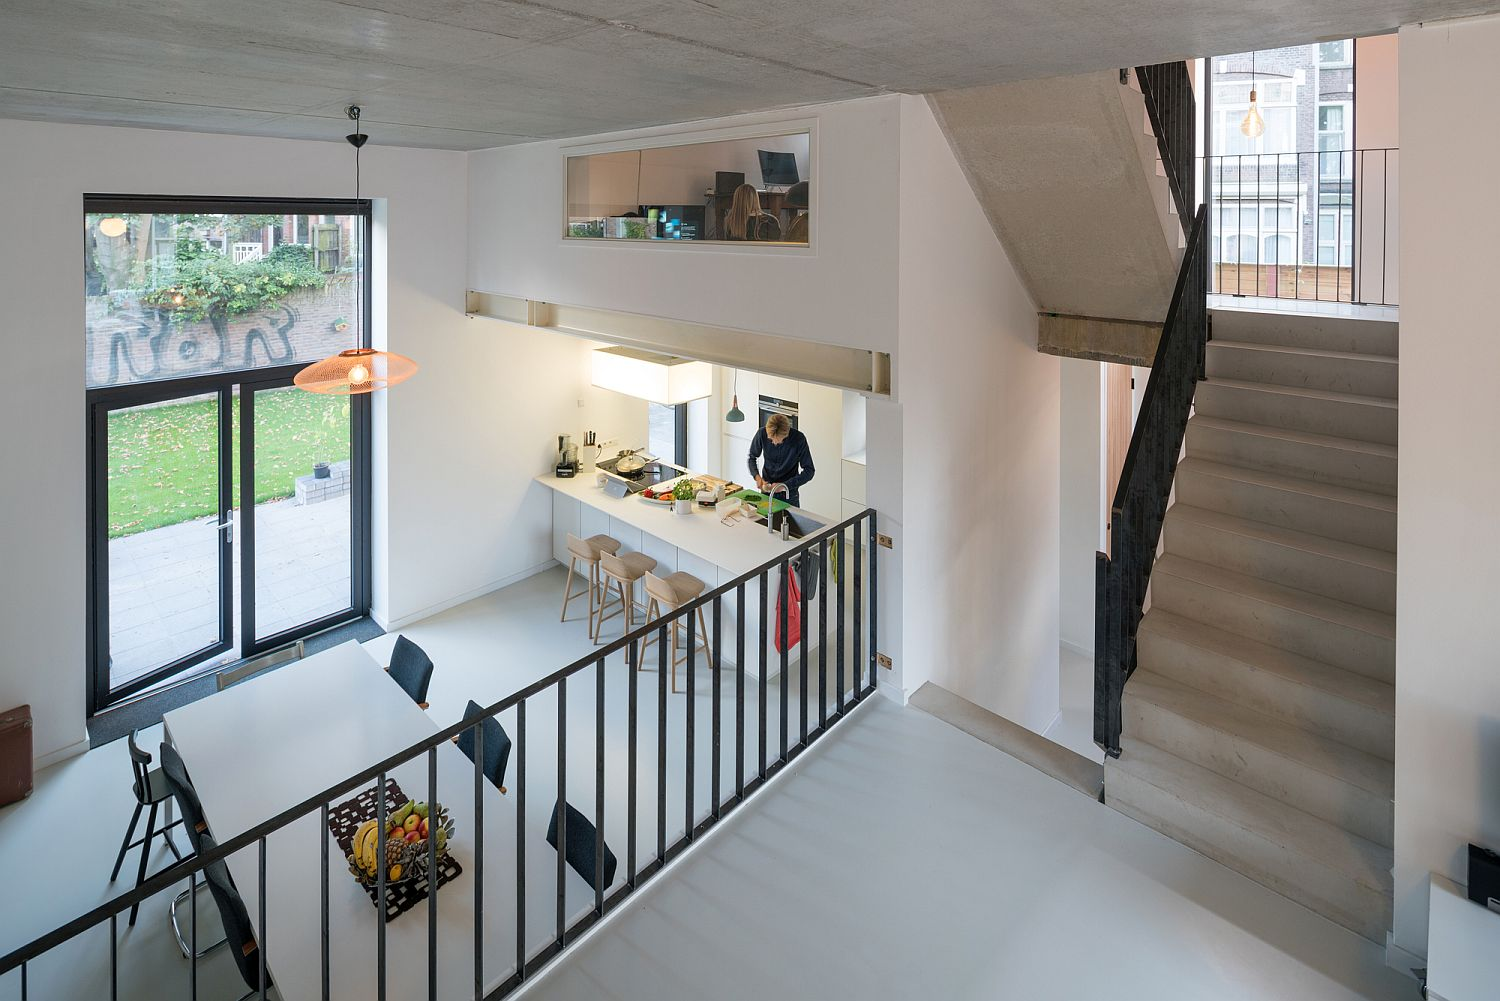 Modern kitchen and dining area connected with the garden